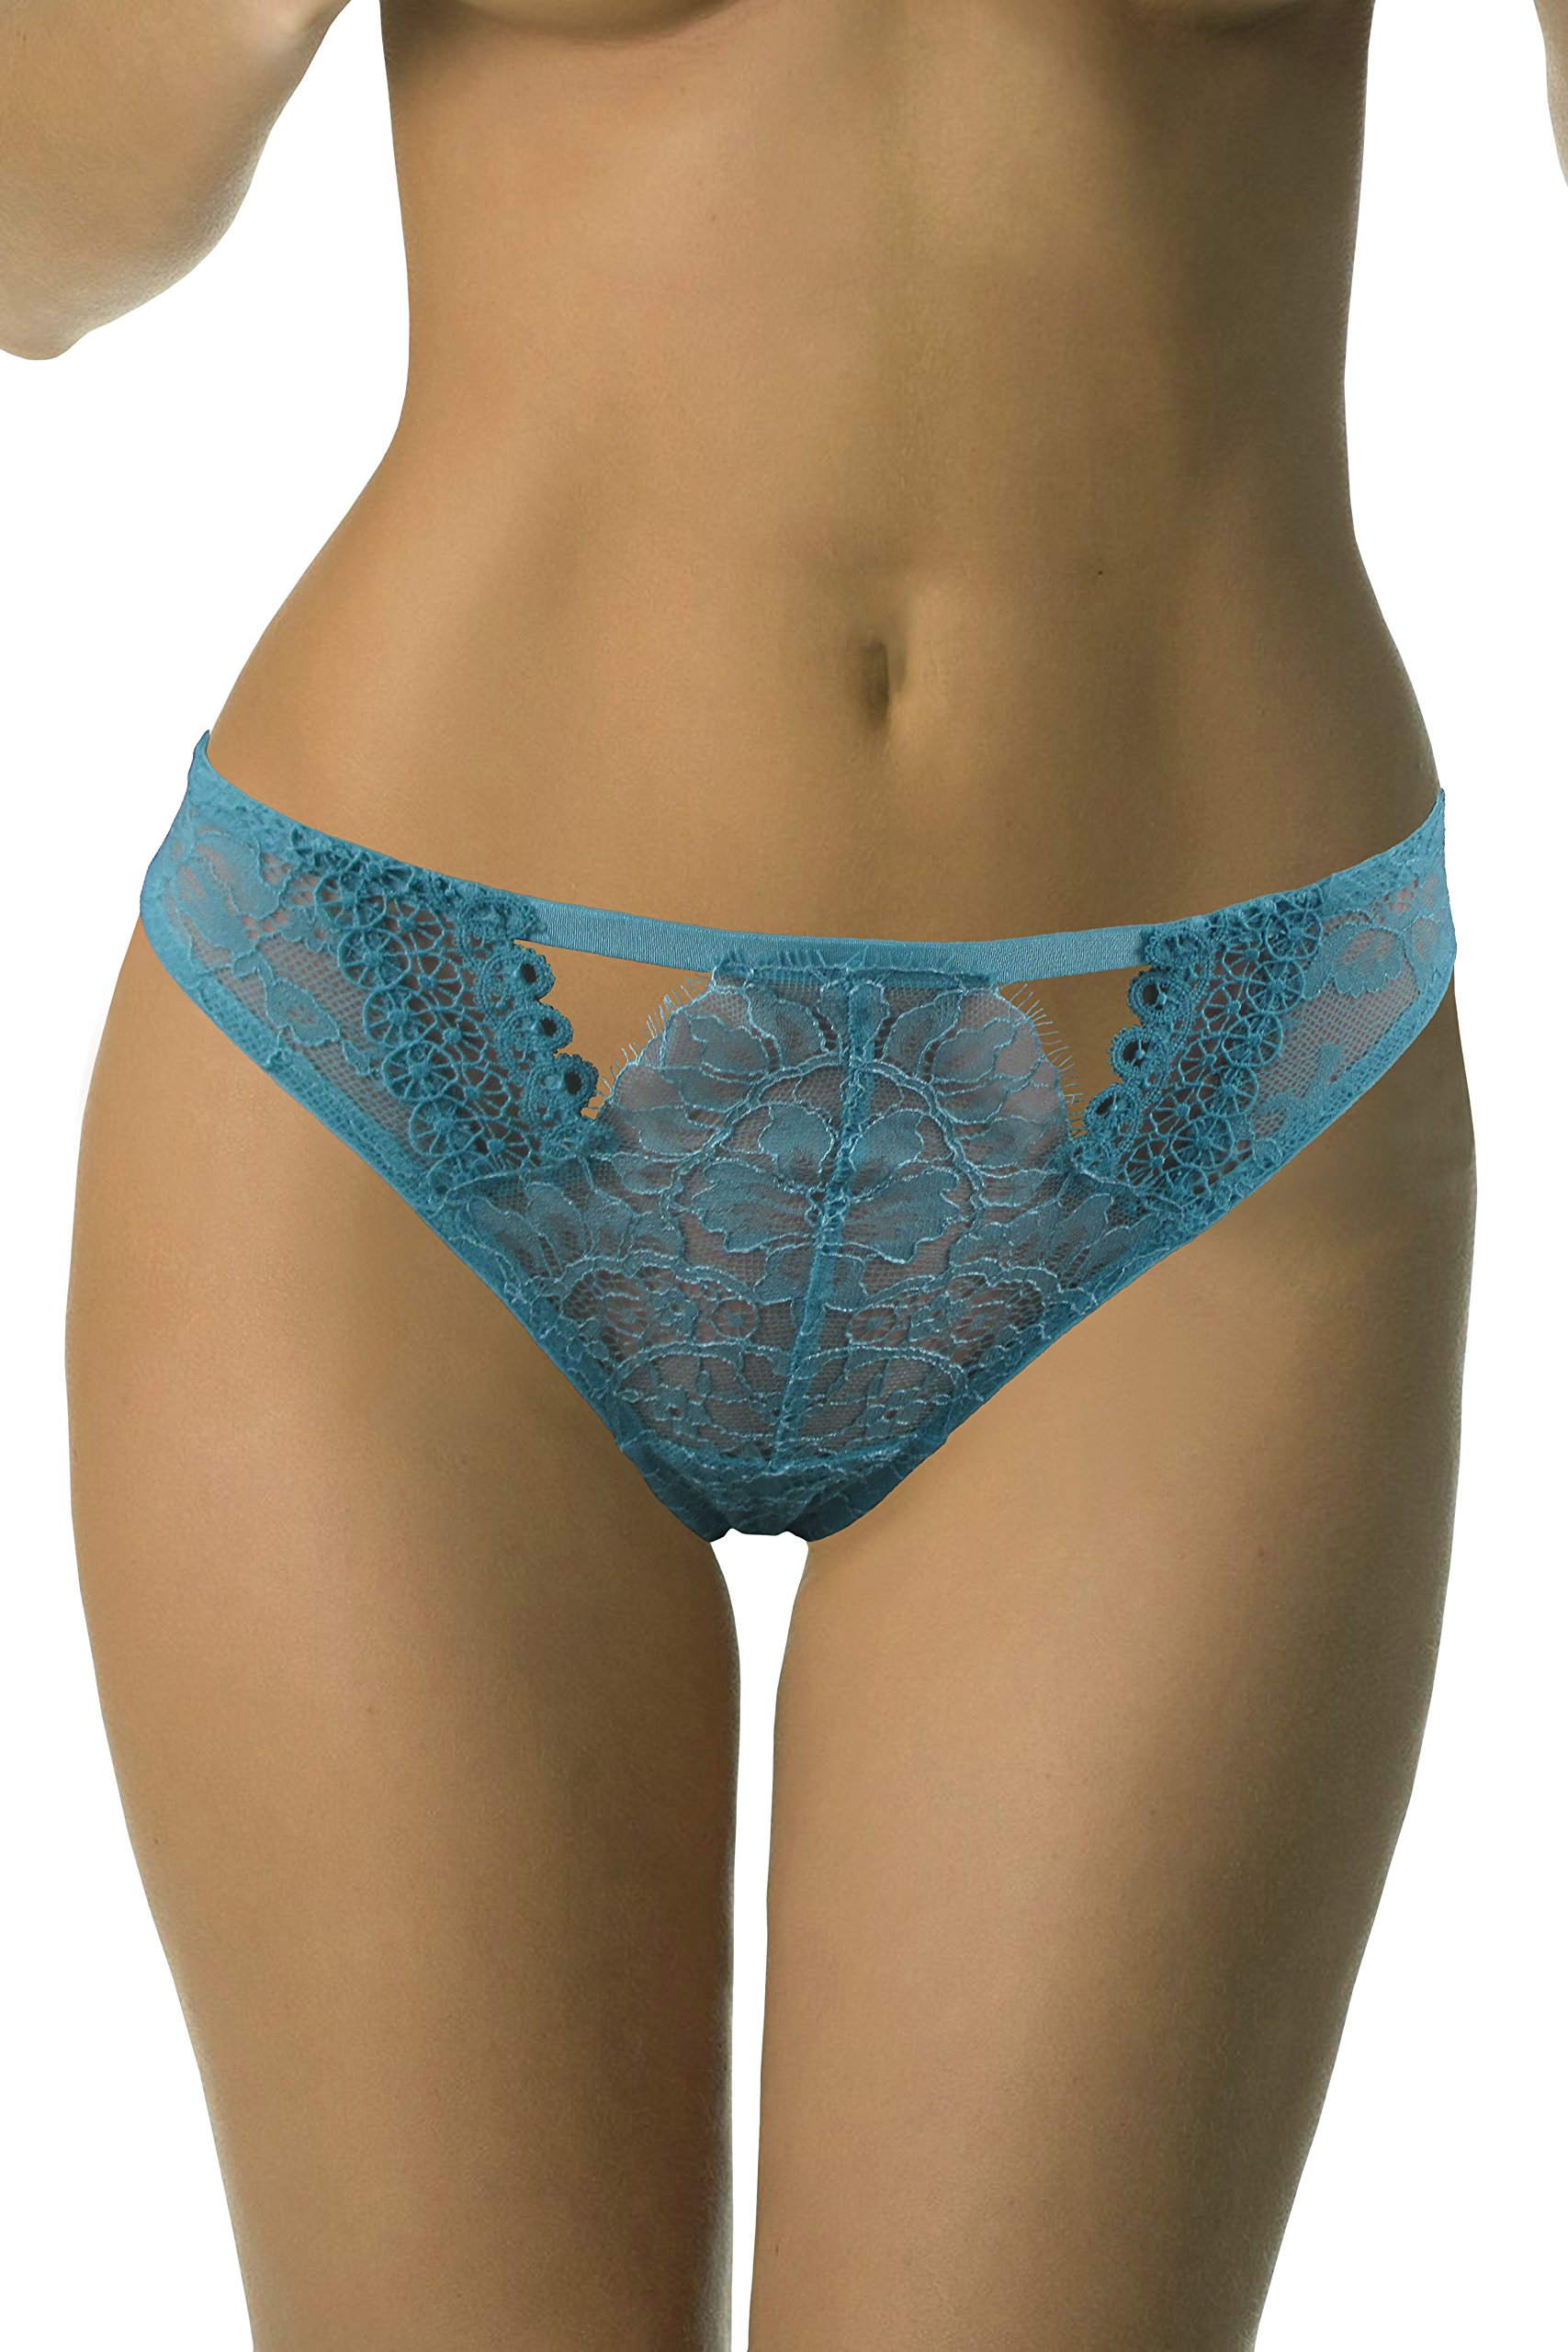 Victorias Secret Sexy Blue Lace & Mesh Cheekini Small by V. Secret